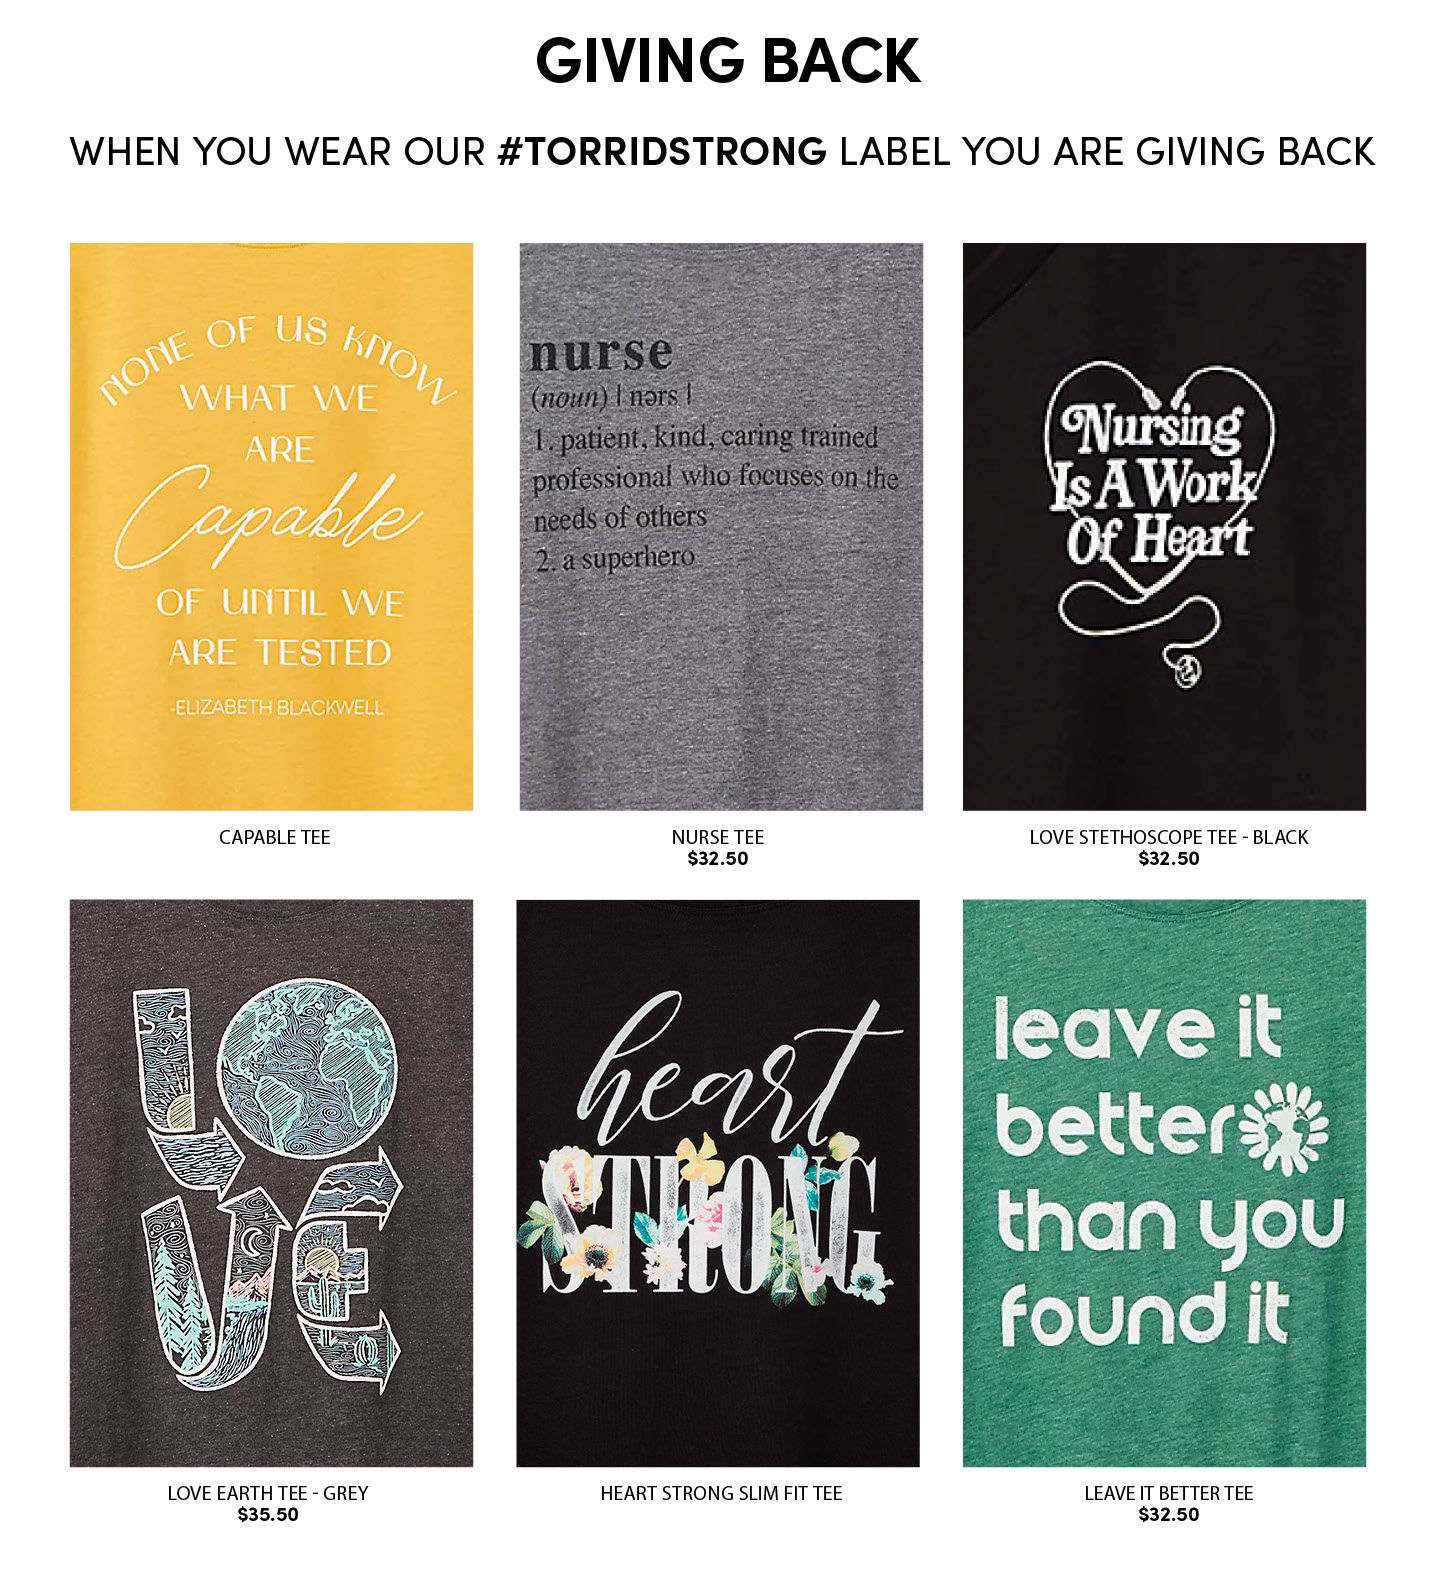 Giving Back when you wear our #TORRIDSTRONG label you are giving back